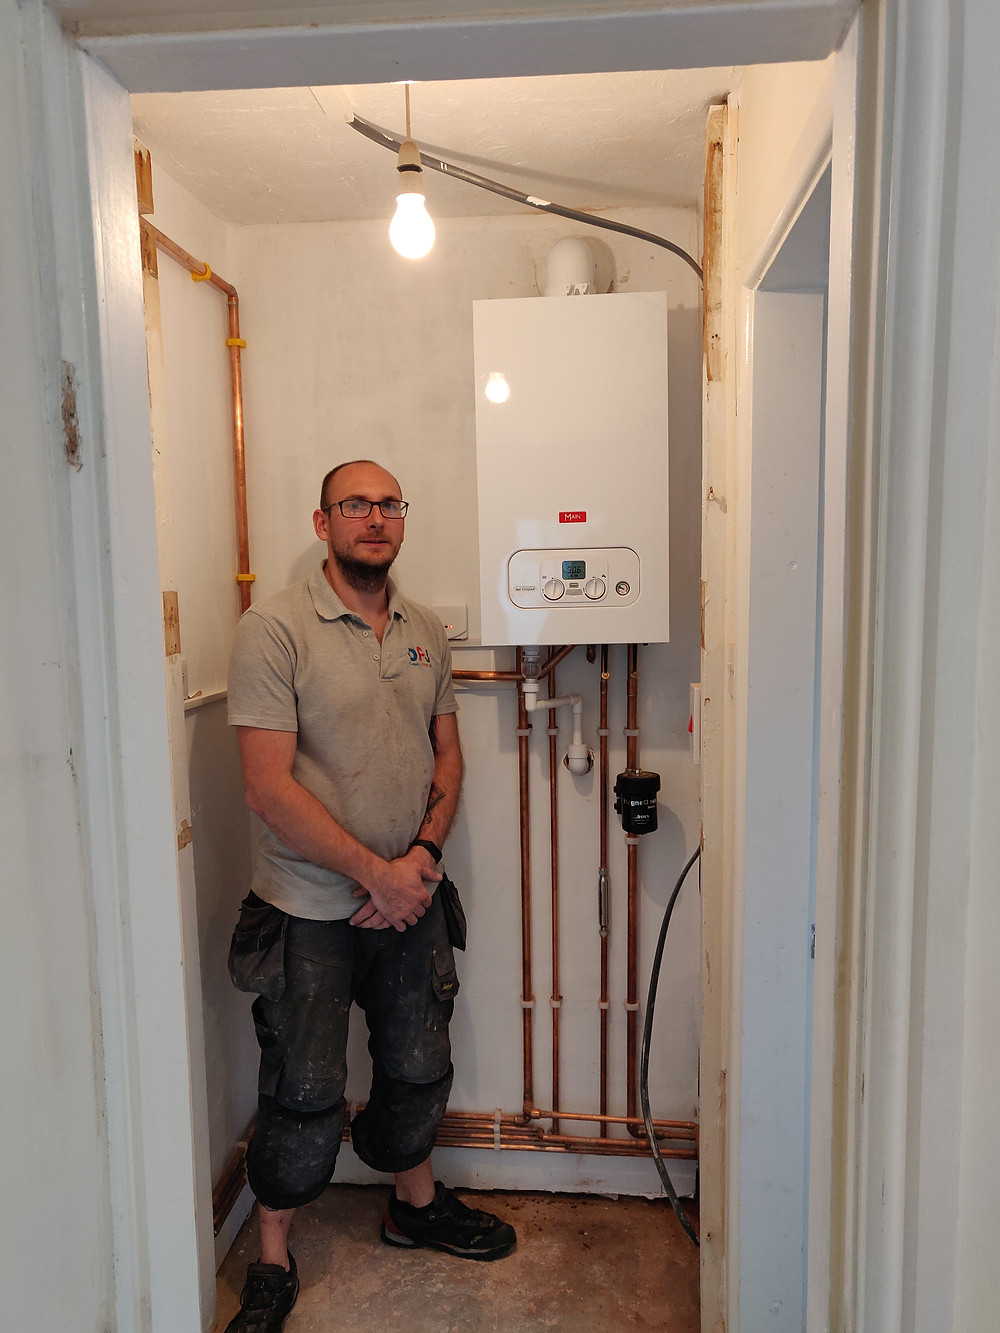 Dan Jackson next to the new Main Eco Compact Combi boiler installation for a landlord in Rugeley